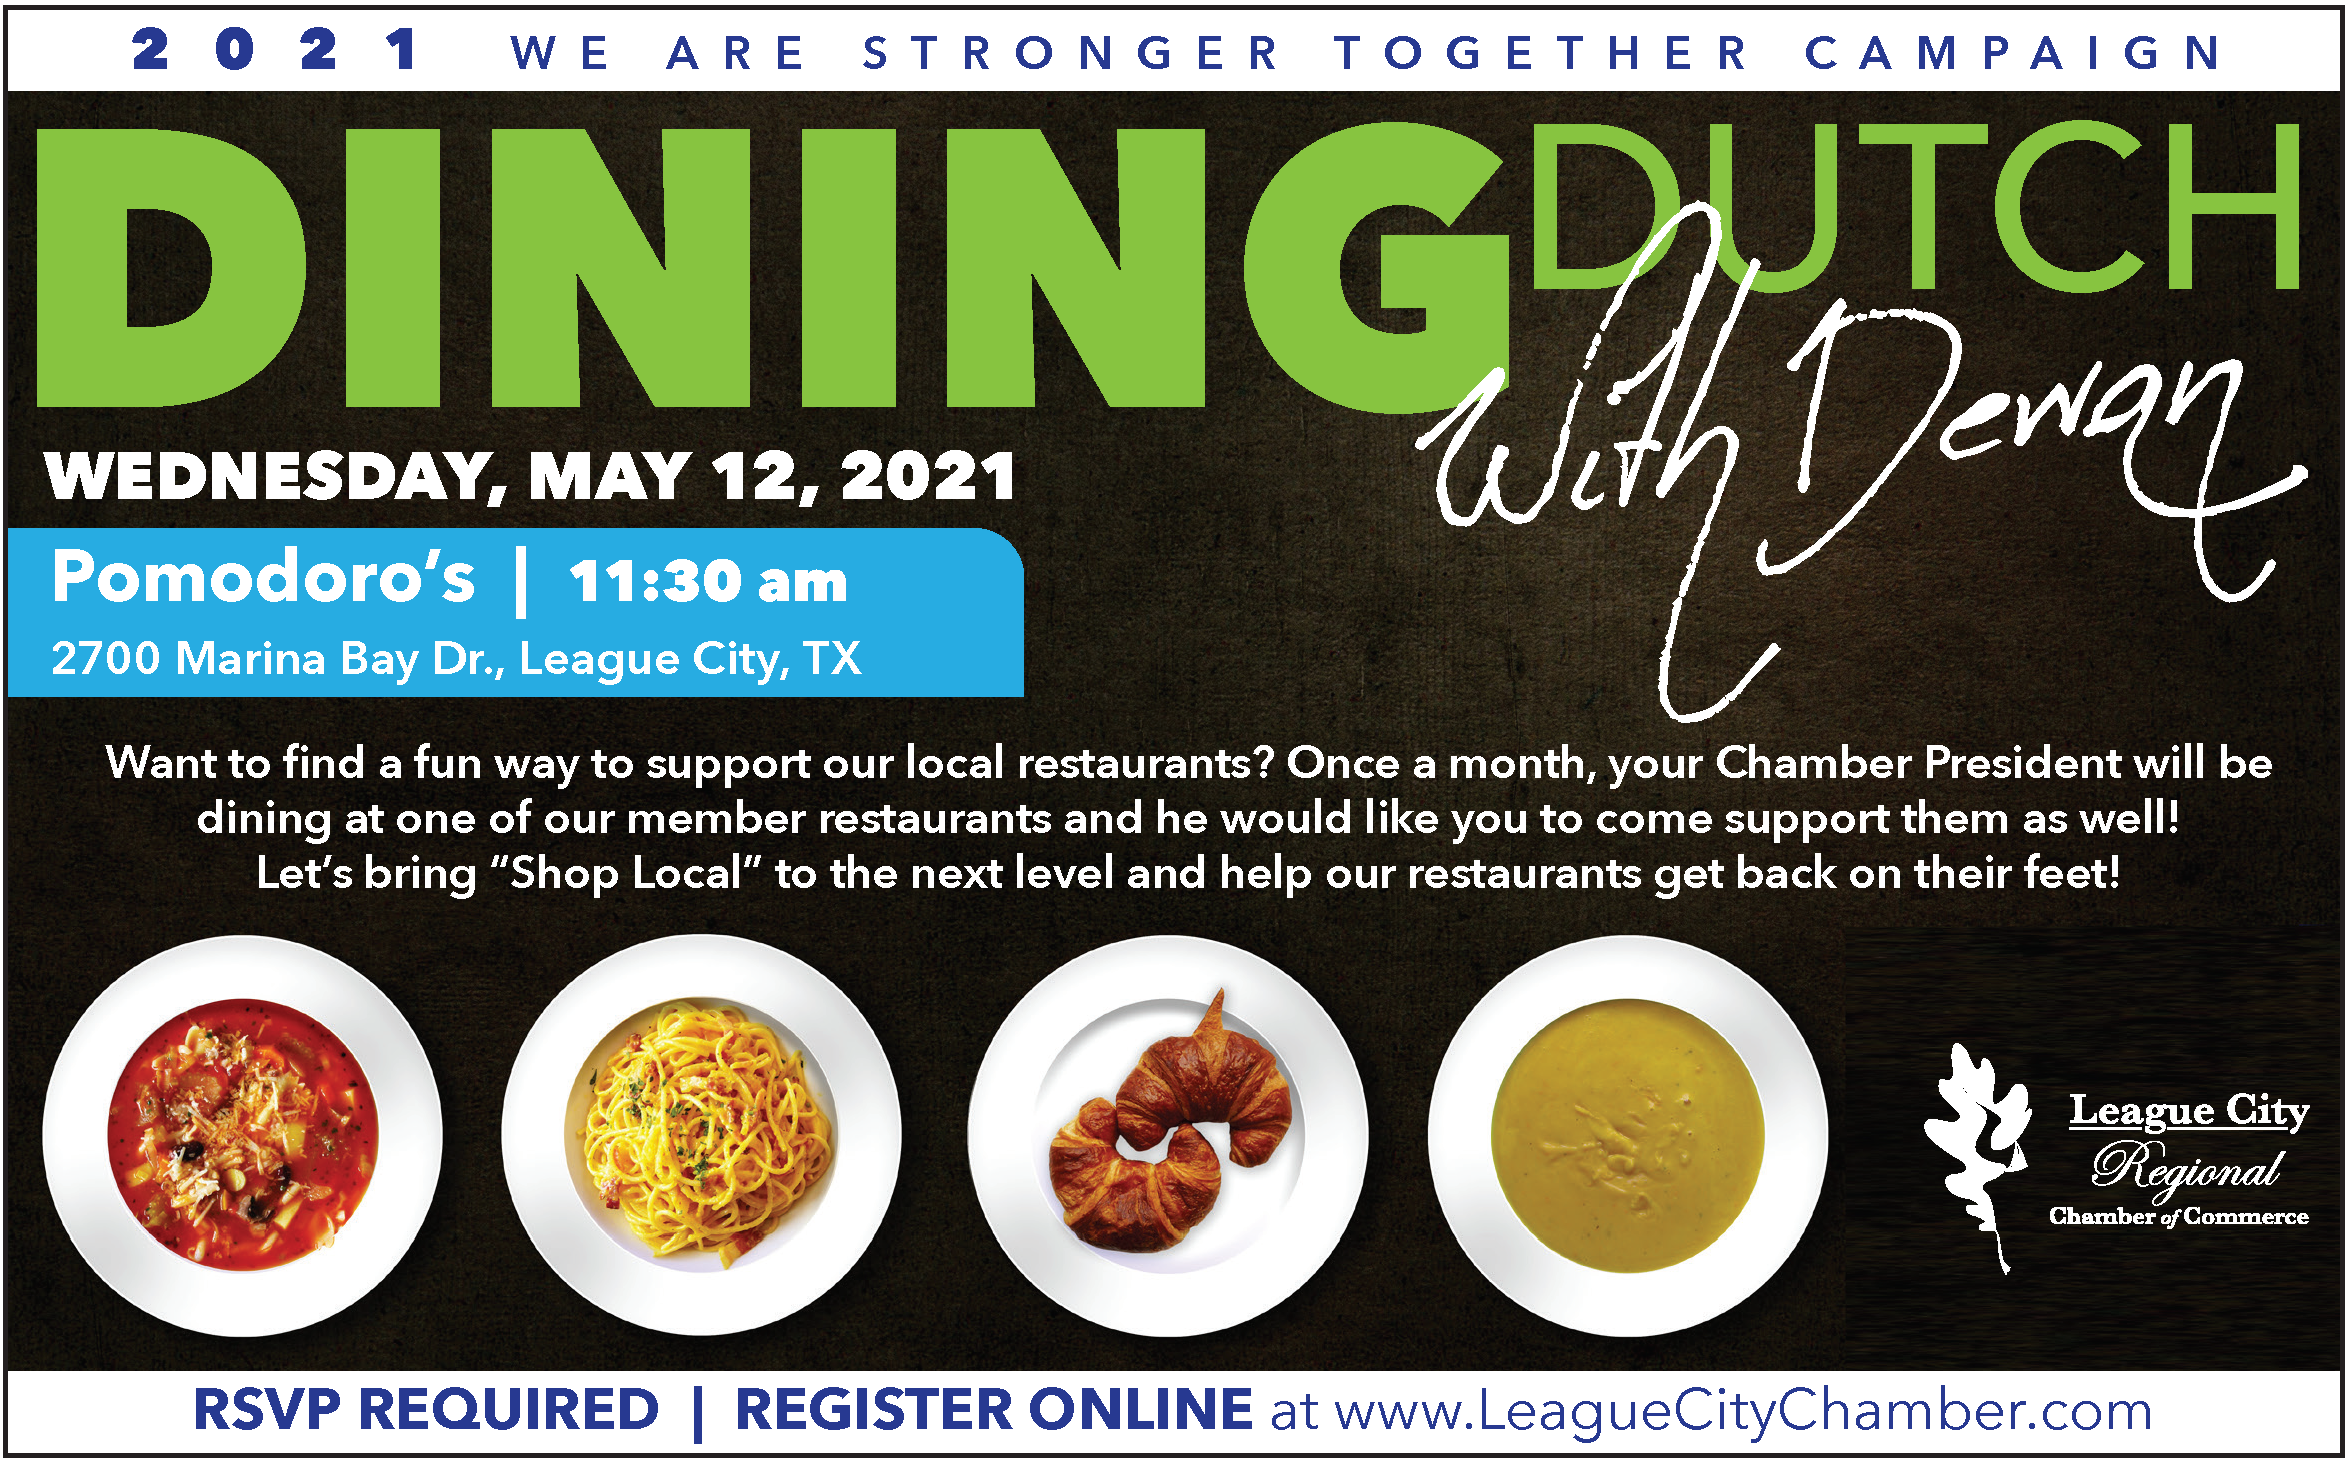 Image for Don't miss the chance to dine with your Chamber President!